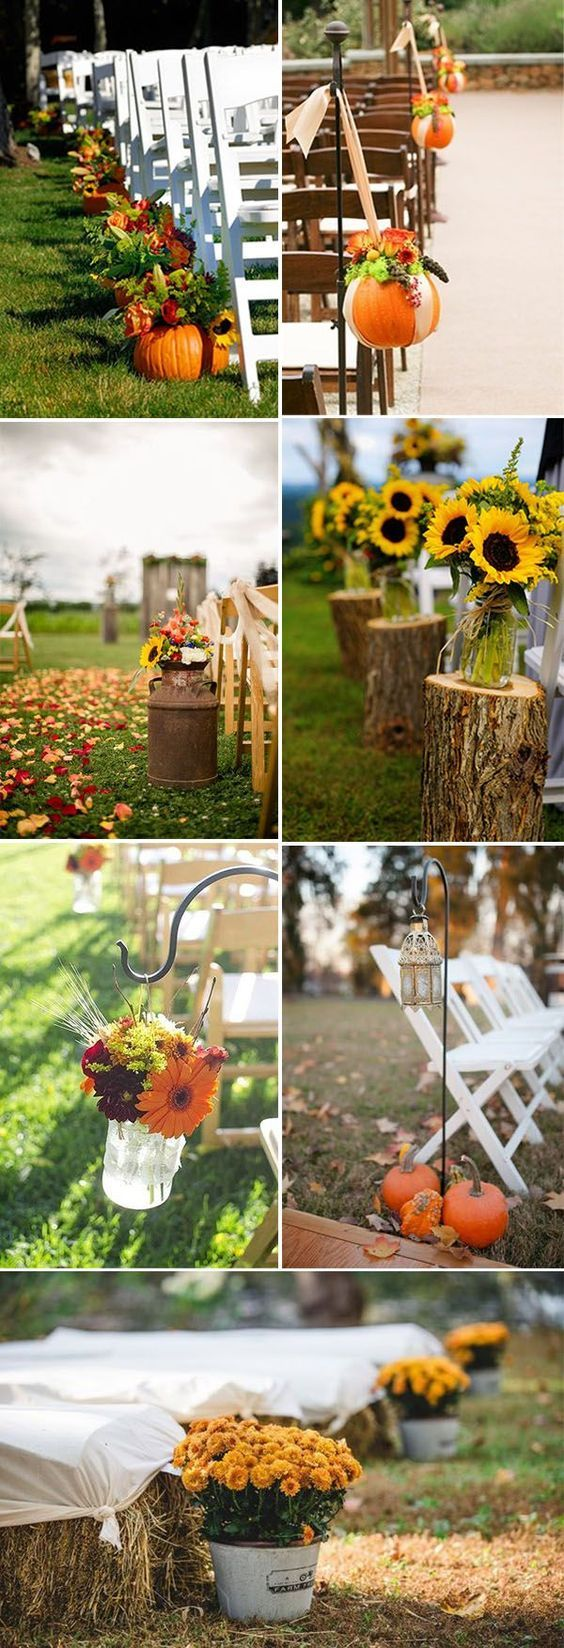 Wedding decorations venue october 2018 Fall In Love With These  Great Fall Wedding Ideas  th Wedding